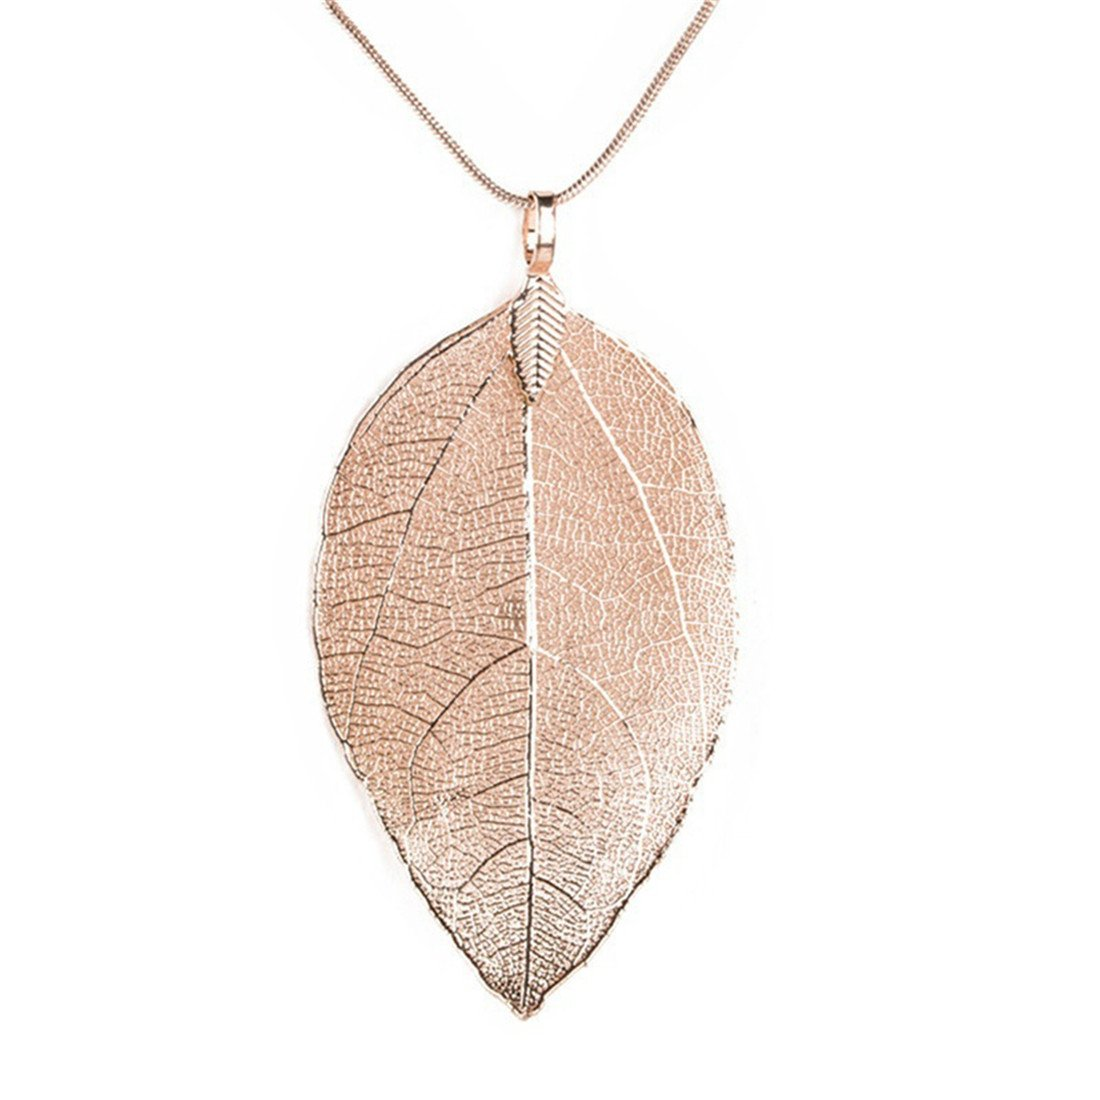 Edtoy Leaves Long Necklace Leaf Sweater Chain Pendant Fashion Accessories (Rose Gold)